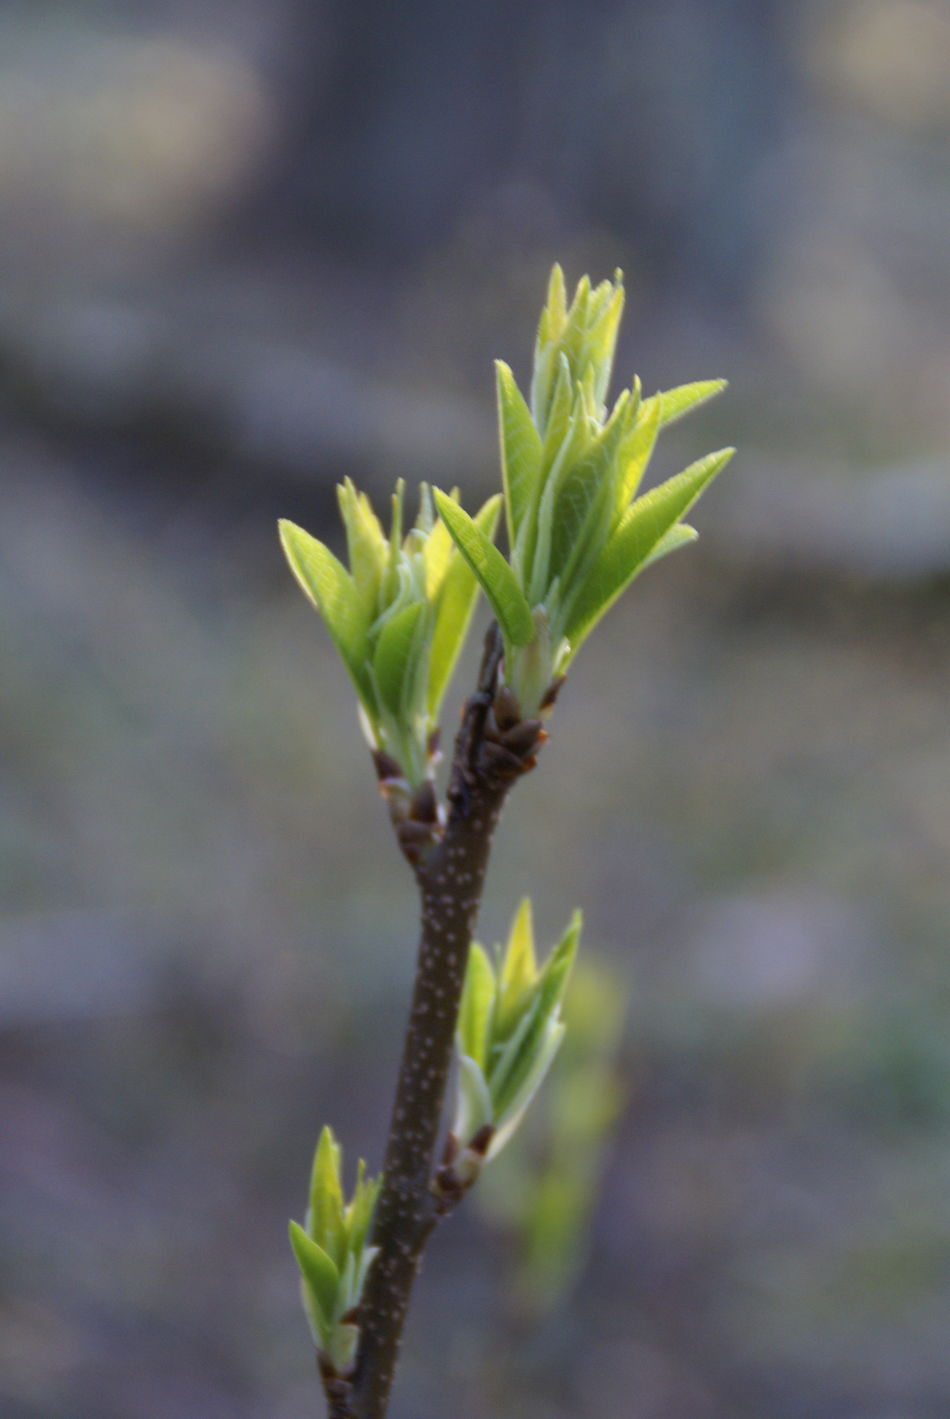 Beauty In Nature Beginnings Bloom Branch Close Up Close-up Day Focus On Foreground Forest Forest Photography Forestwalk Fragility Freshness Green Growth Leaf Leaves Macro Nature New Life No People Outdoors Pine Tree Plant Sun